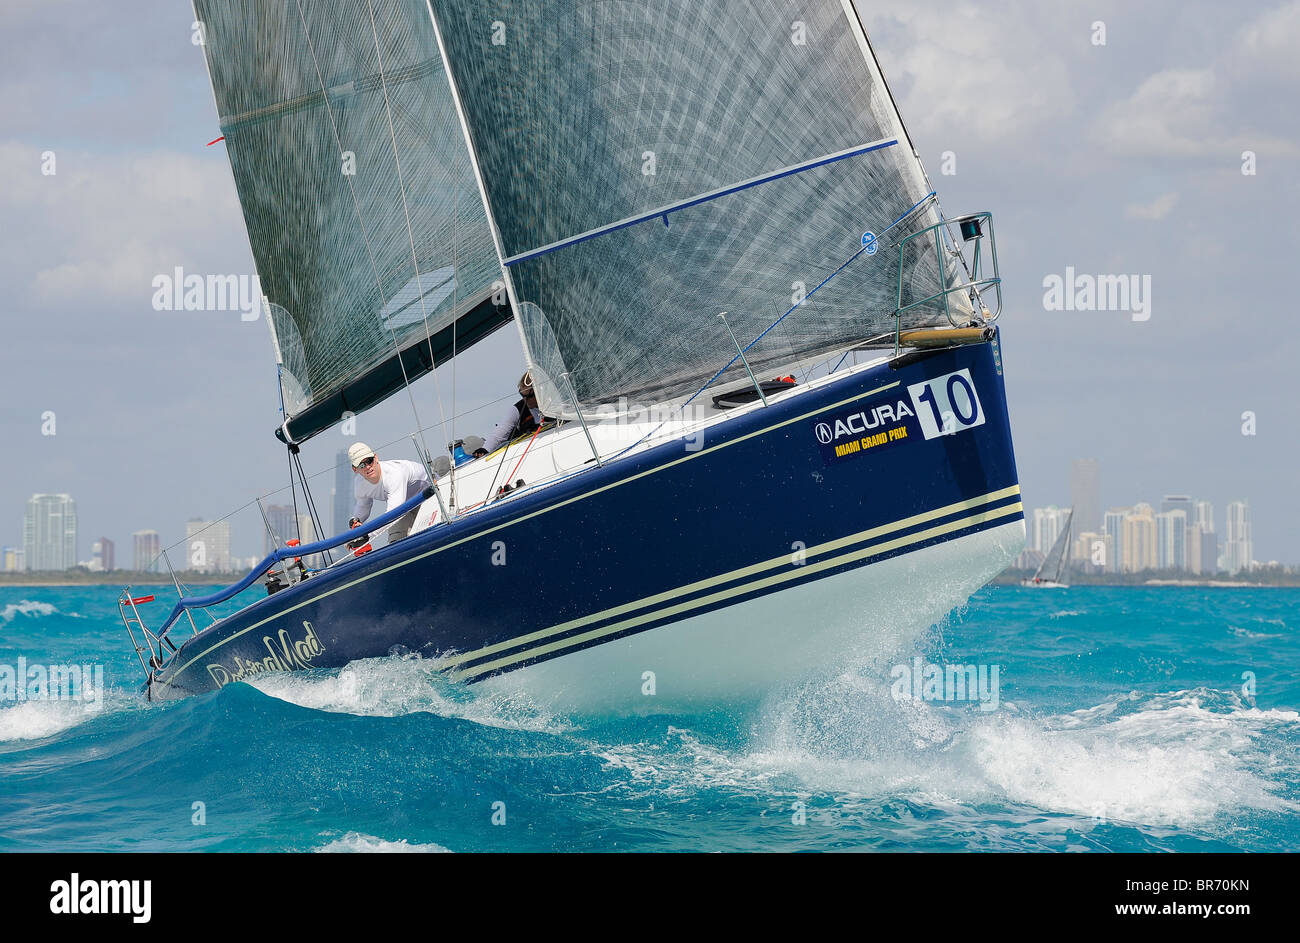 Farr 40 'Barking Mad' during a race at the 2009 Acura Miami Grand Prix, day 4, 8th March. - Stock Image